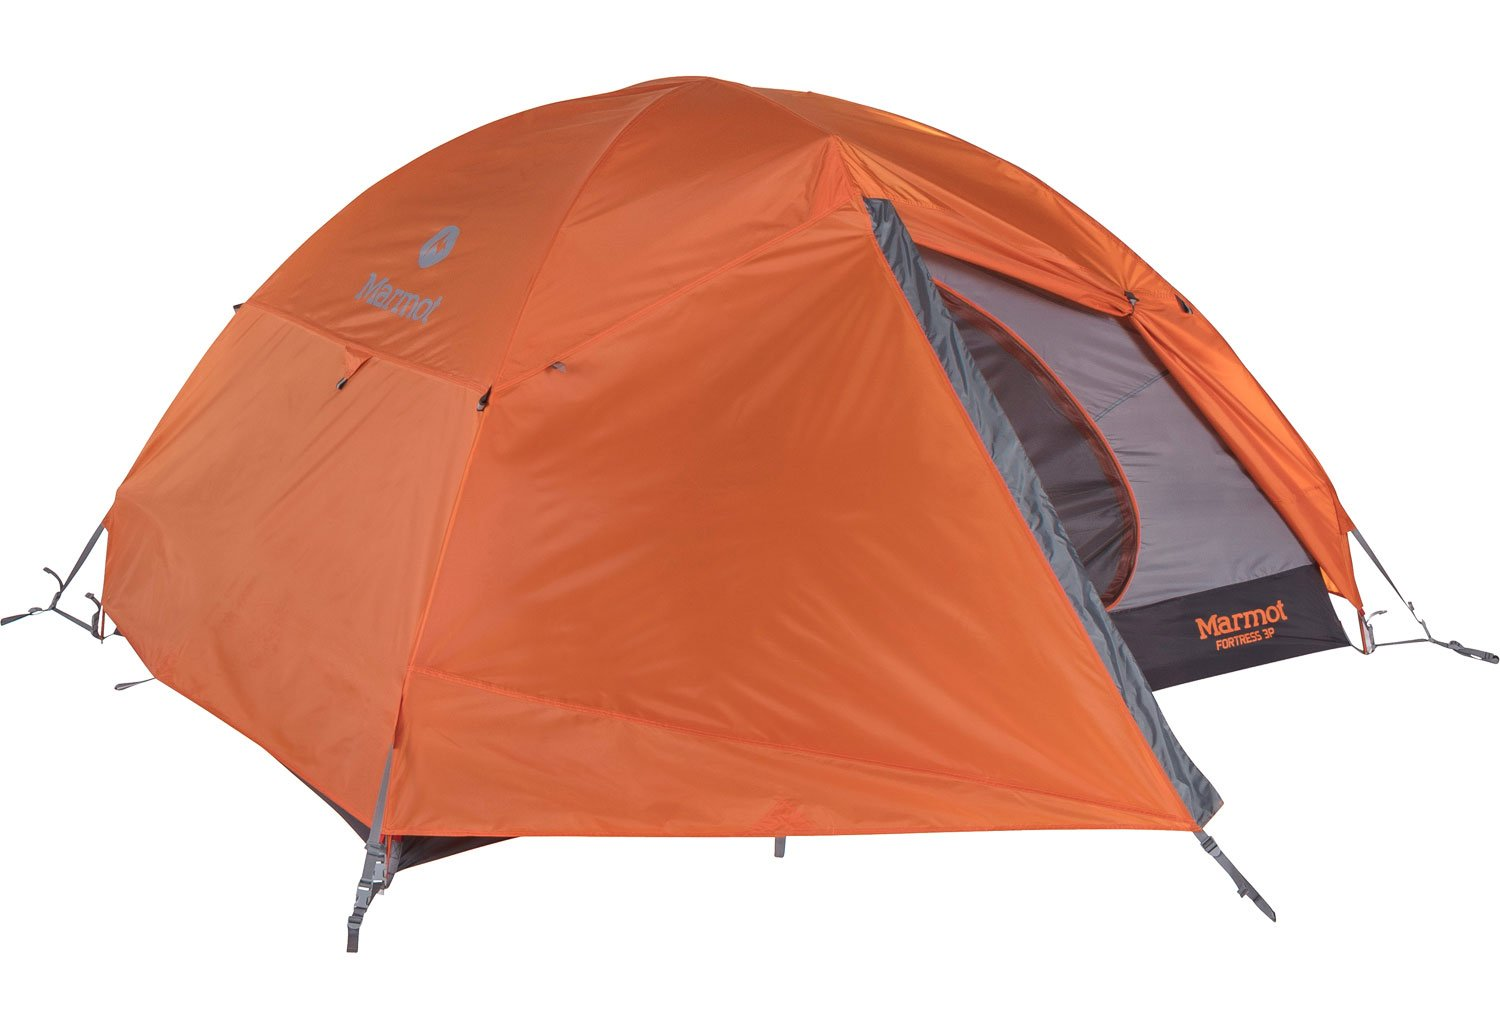 Marmot Fortress 3 Person Backpacking Tent